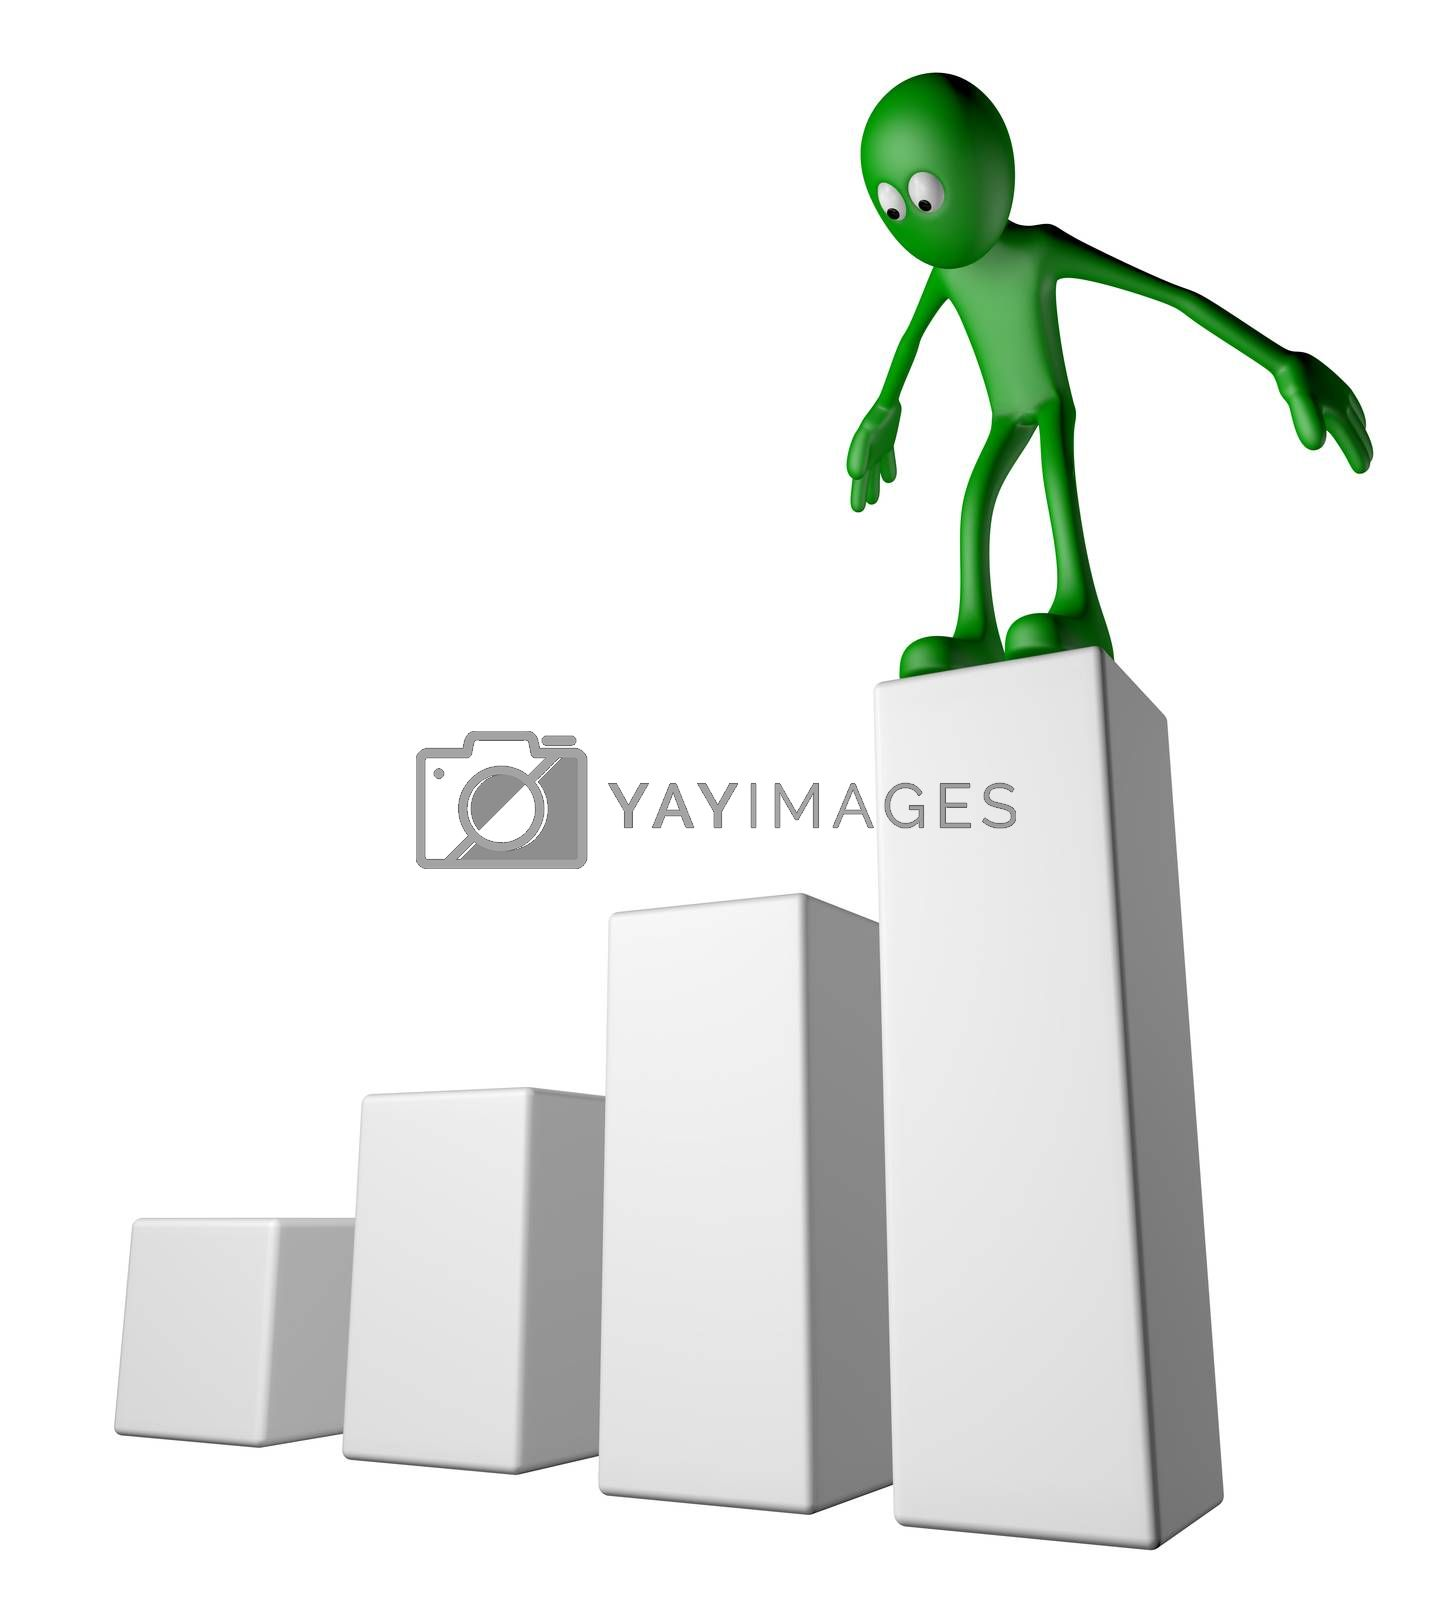 green guy on business graph - 3d illustration